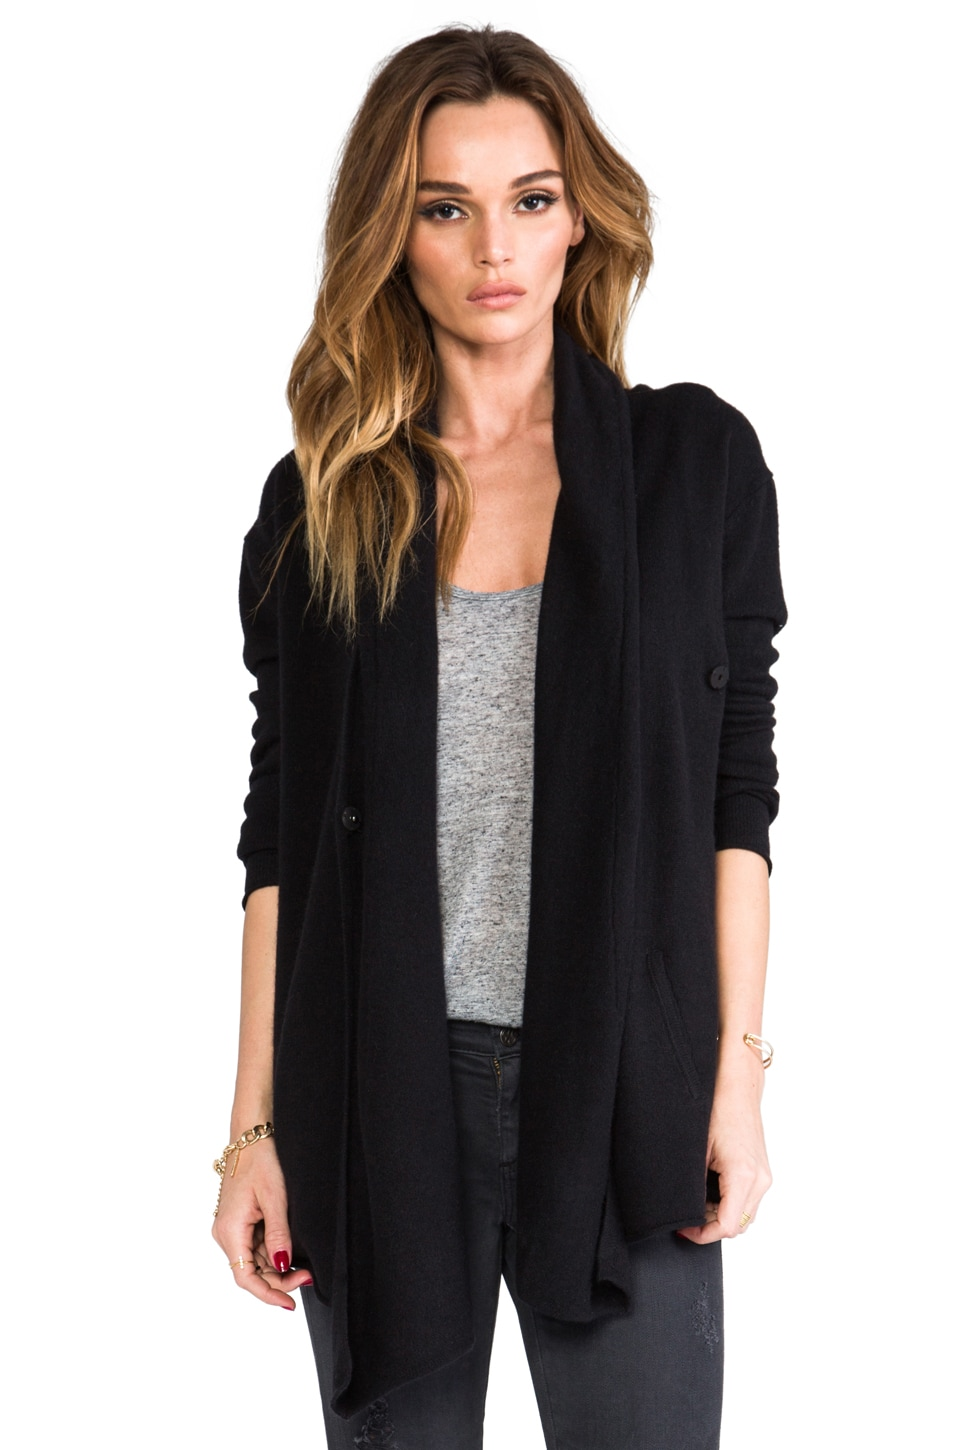 Central Park West Bristol Cashmere Cardigan in Black